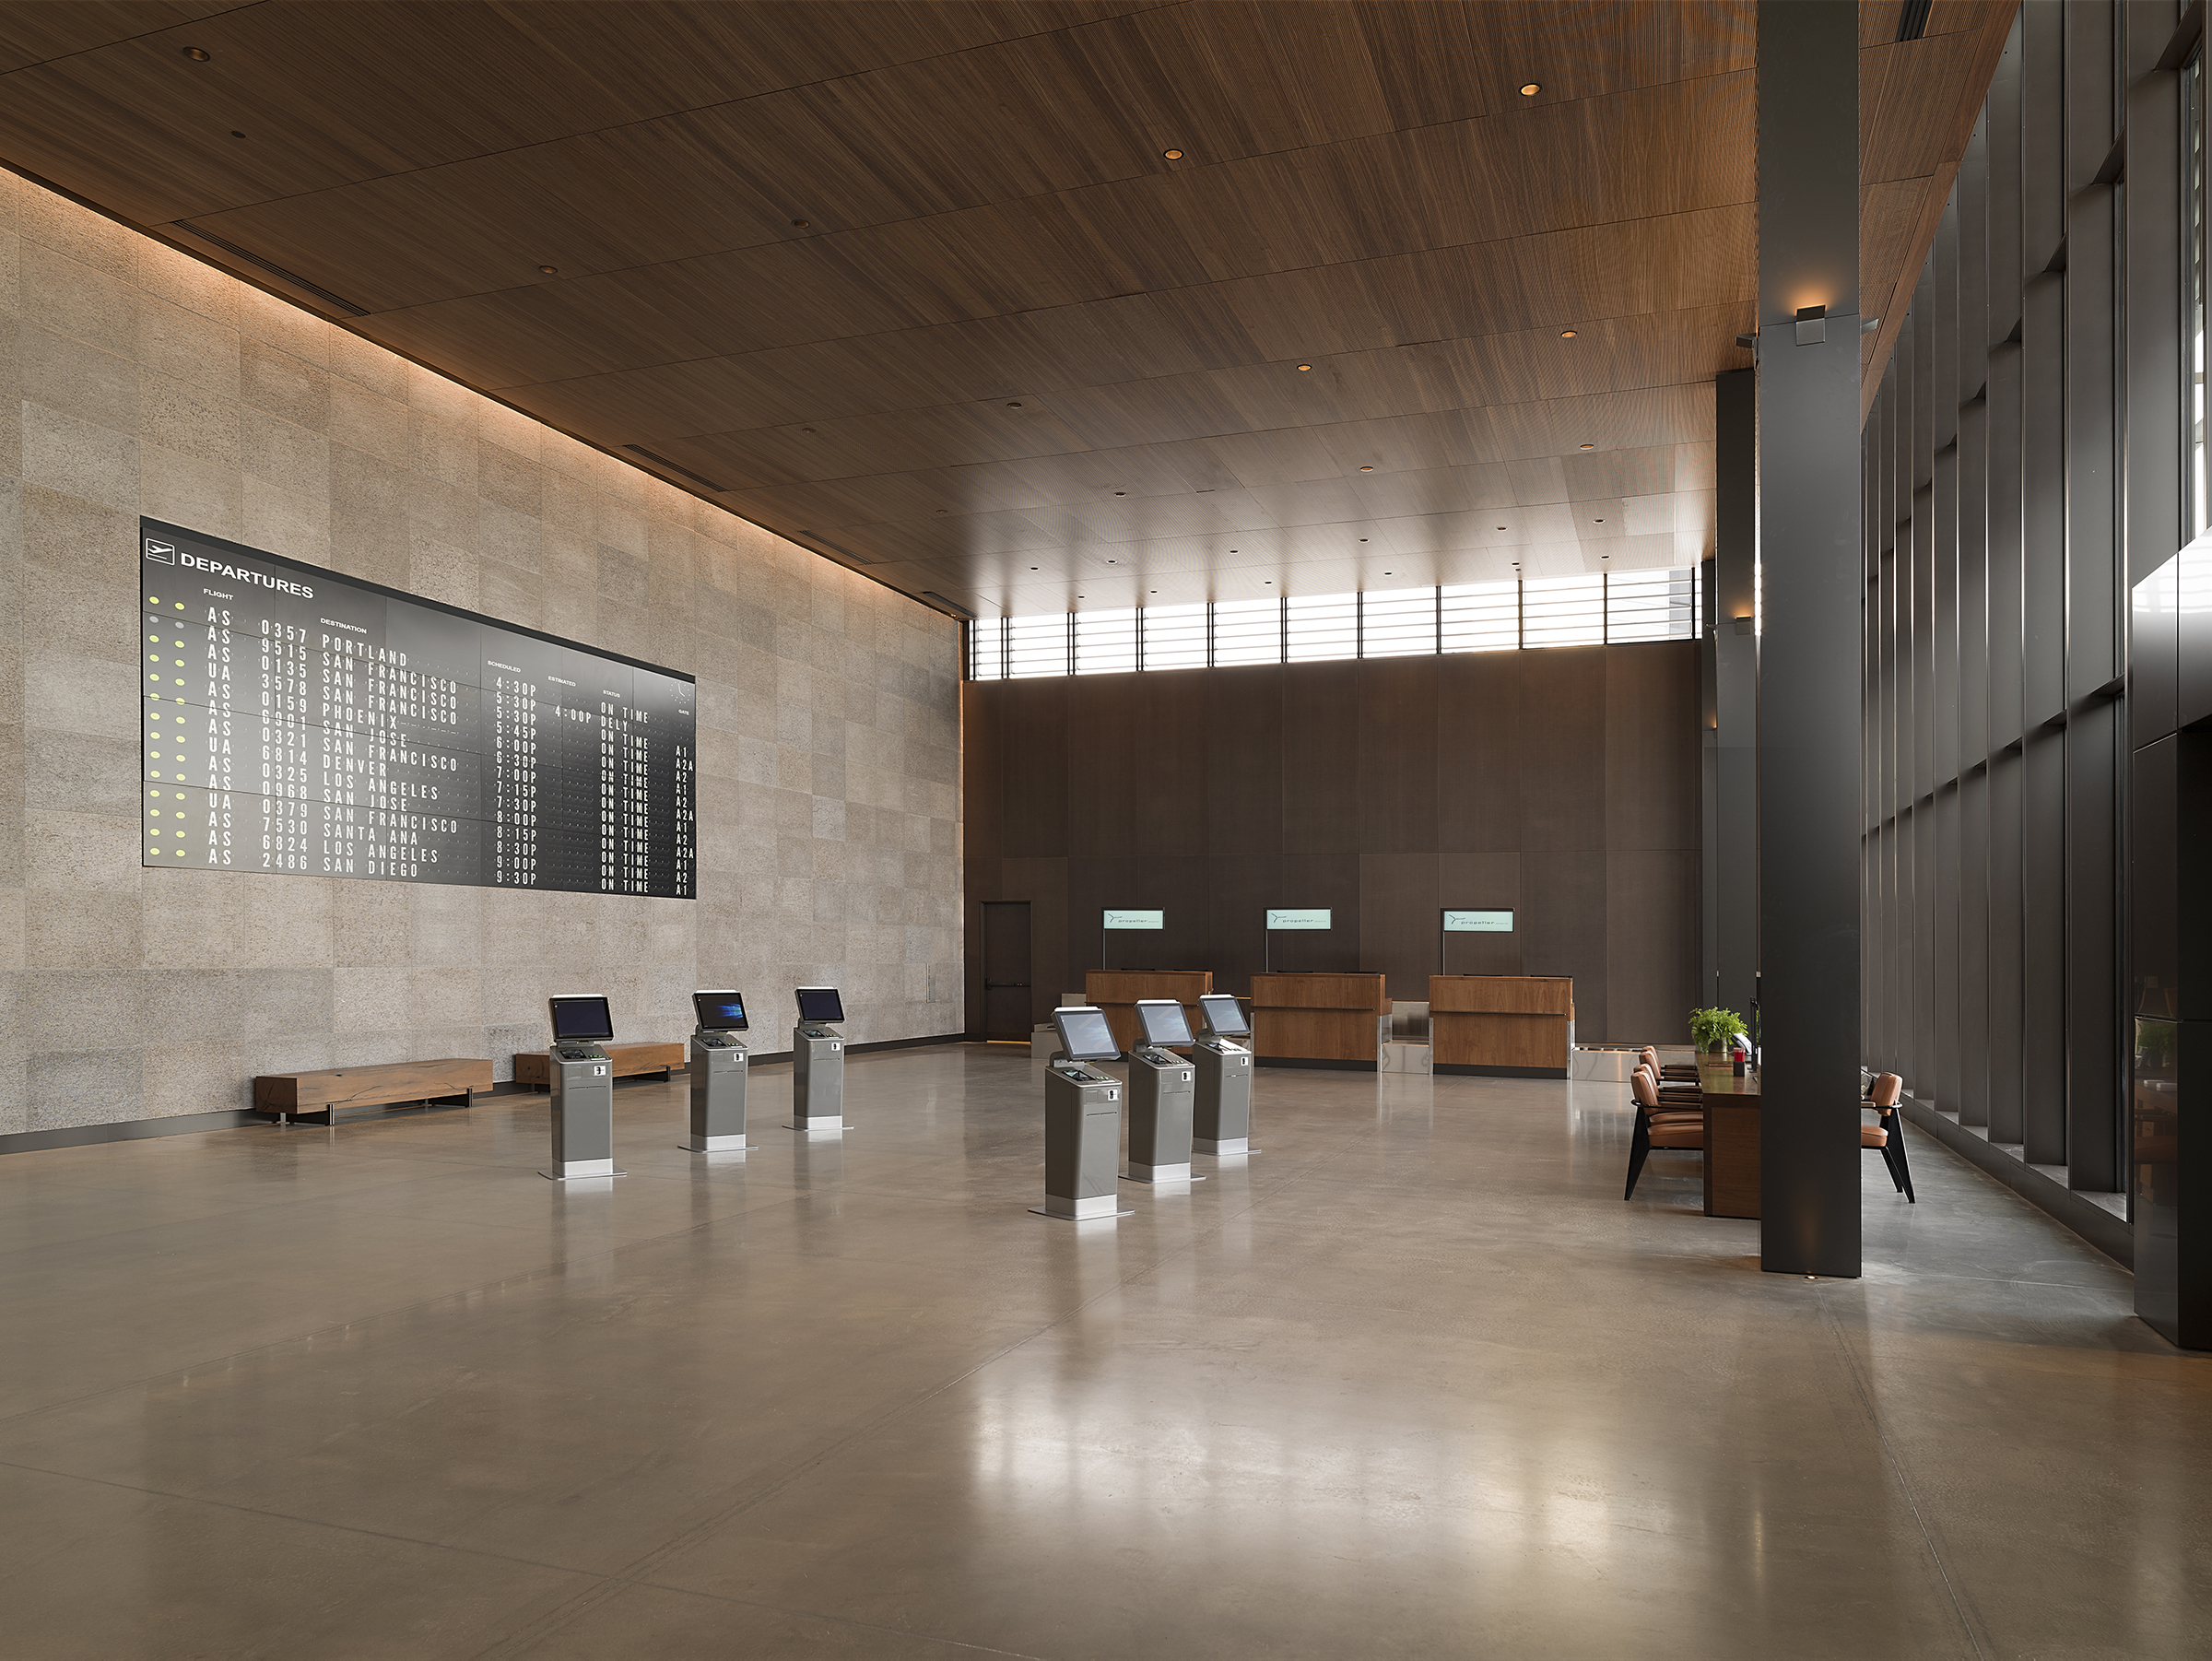 Ticketing Hall at Paine Field